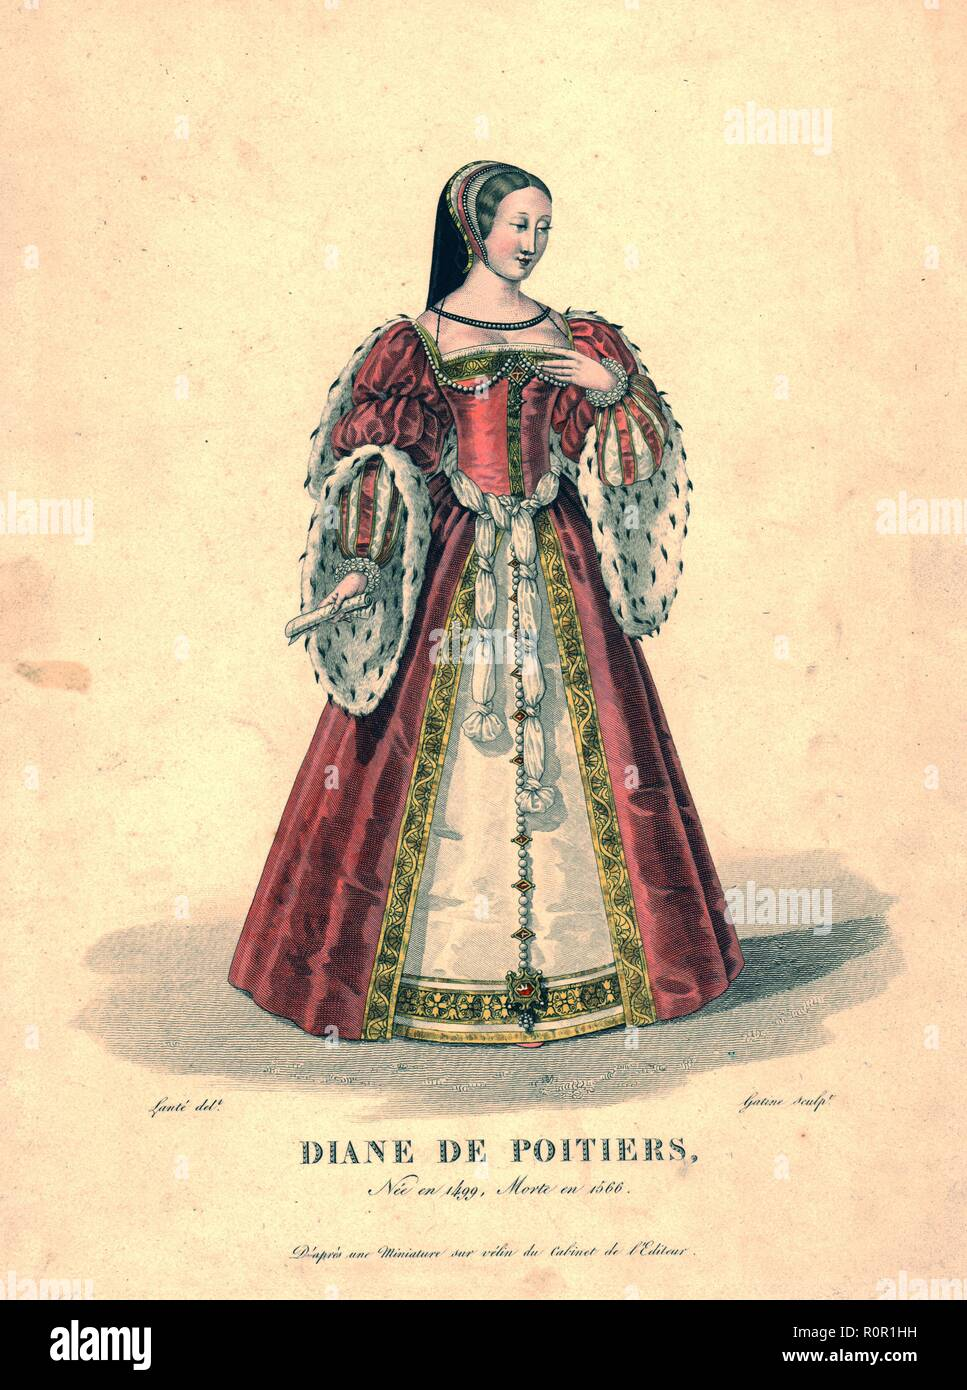 Diane de Poitiers, (early 19th century). Portrait of Diane de Poitiers (1499-1566), chief mistress of King Henry II of France. She wears a chaperon headress, a pink velvet surtout with puffed and slashed sleeves trimmed with ermine and gold embroidery, with a knotted belt. Engraving after a miniature on vellum. - Stock Image